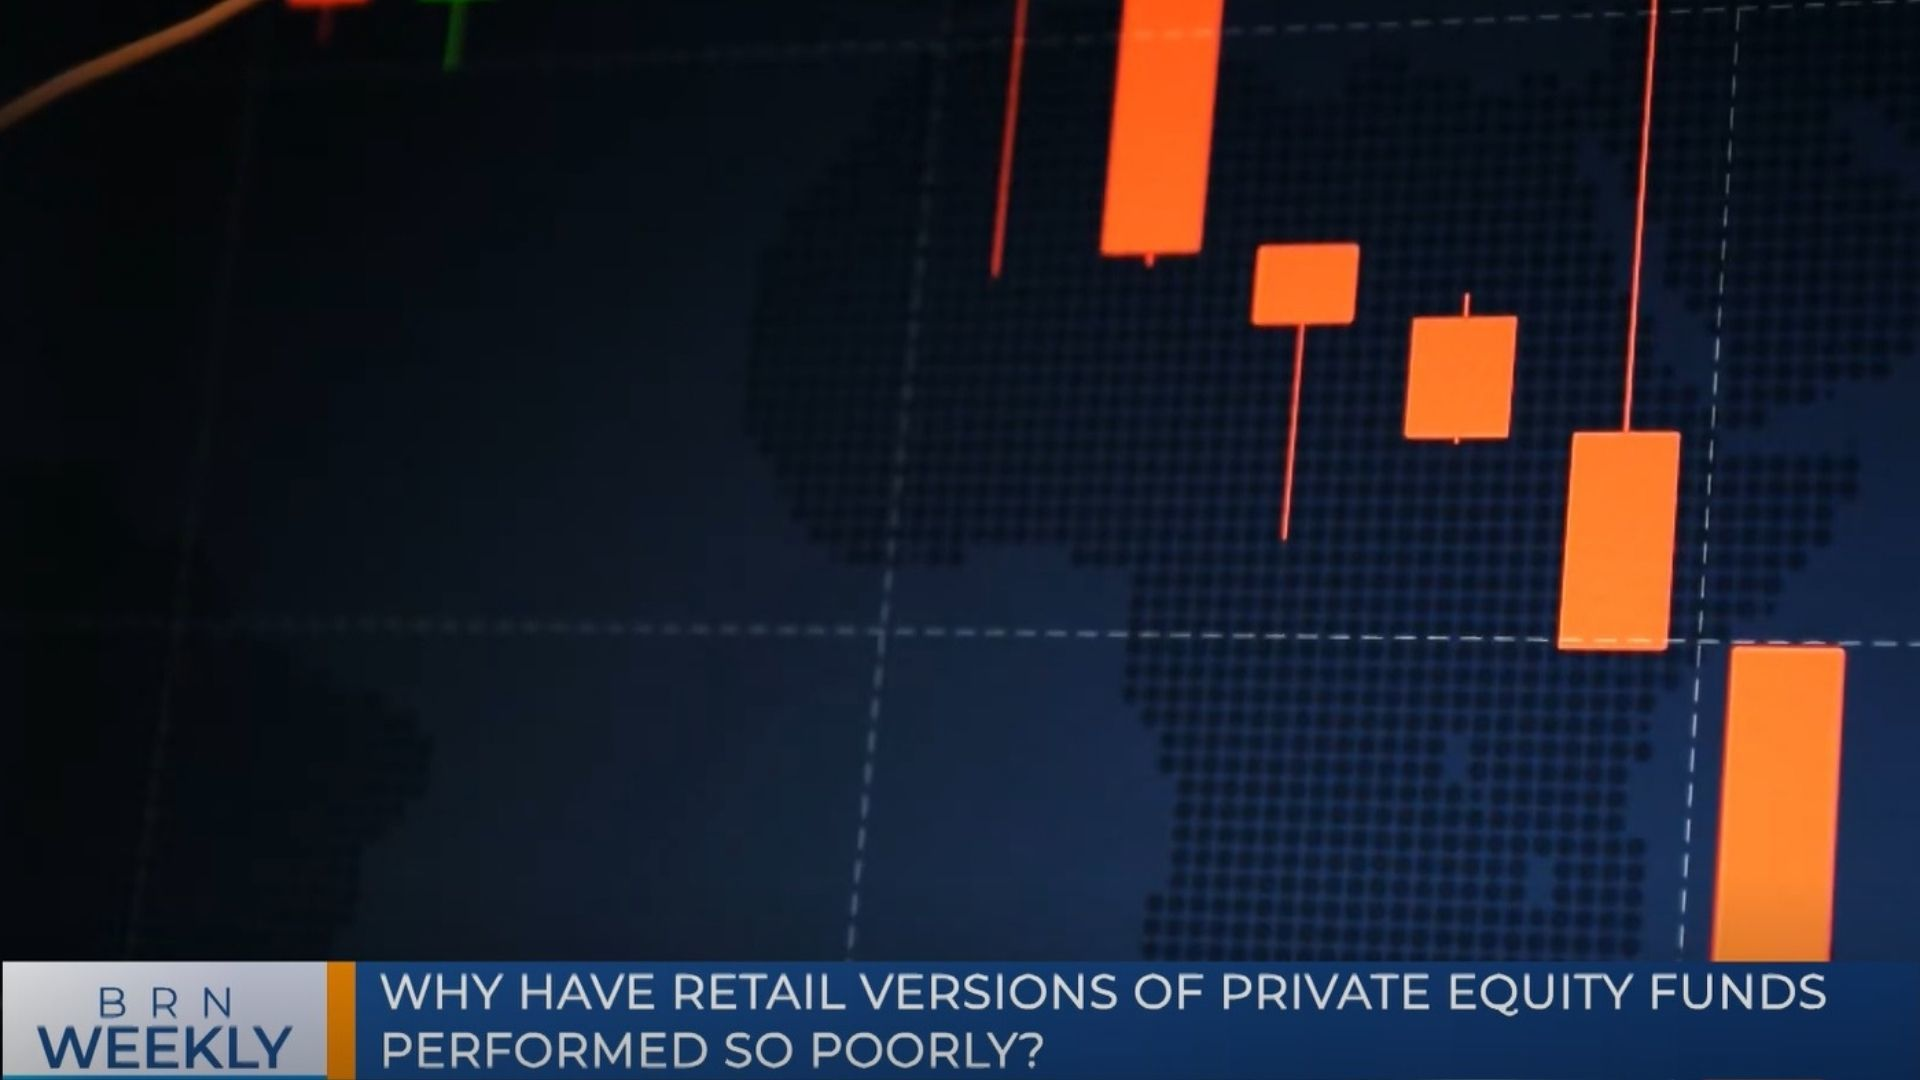 BRN Weekly | Why have retail versions of private equity funds performed so poorly?